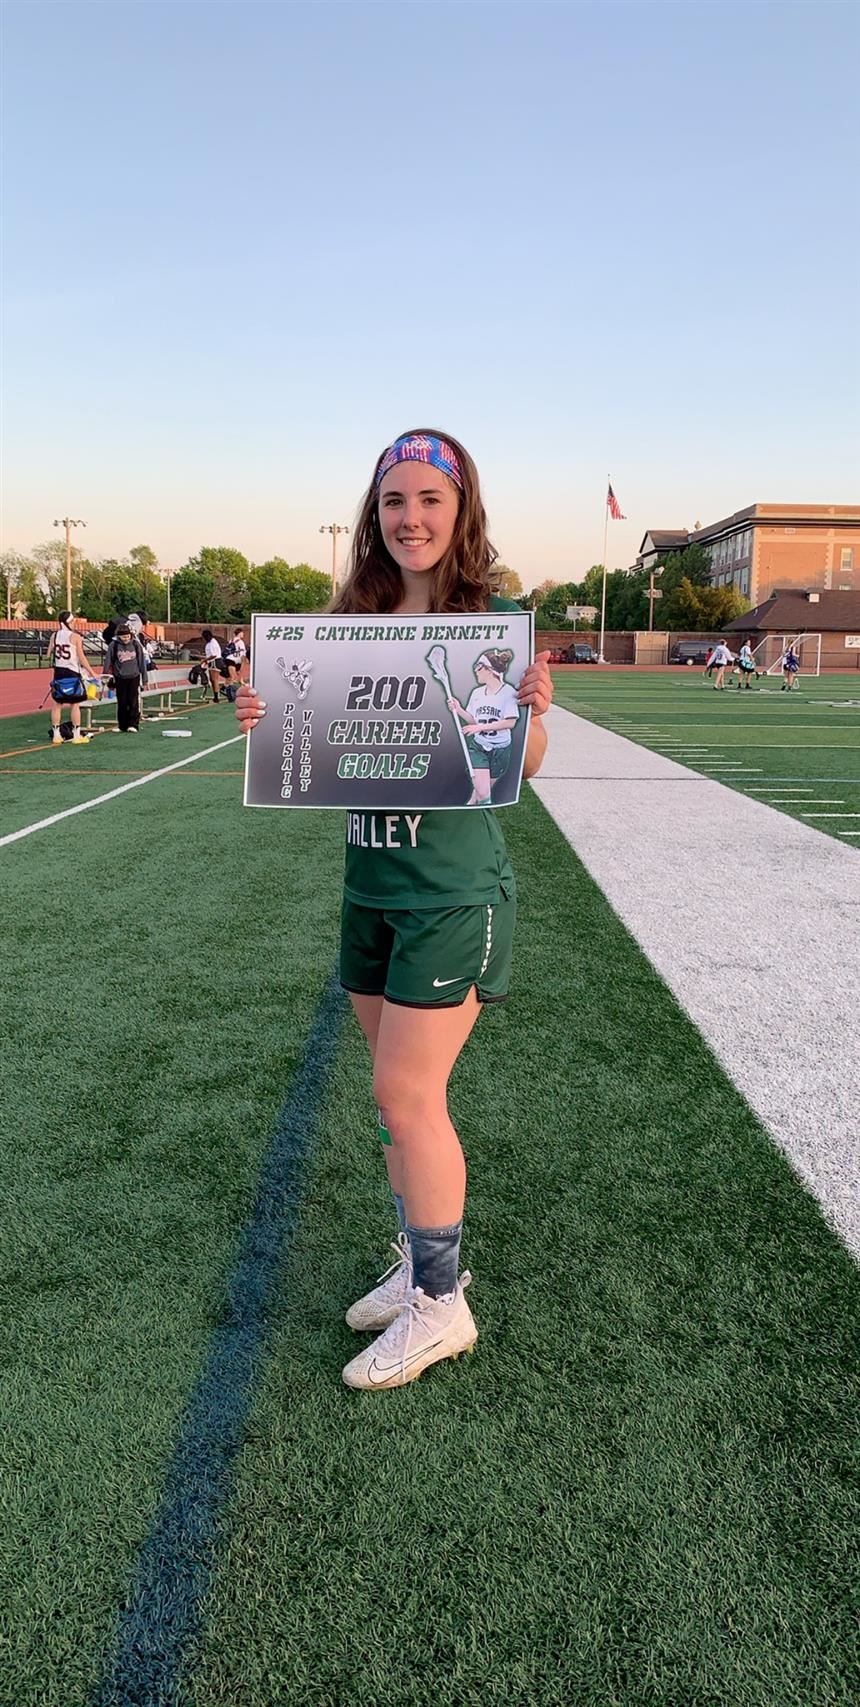 Bennett Scores 200 Career Goals; photo credit: Ms. Lori Demsey